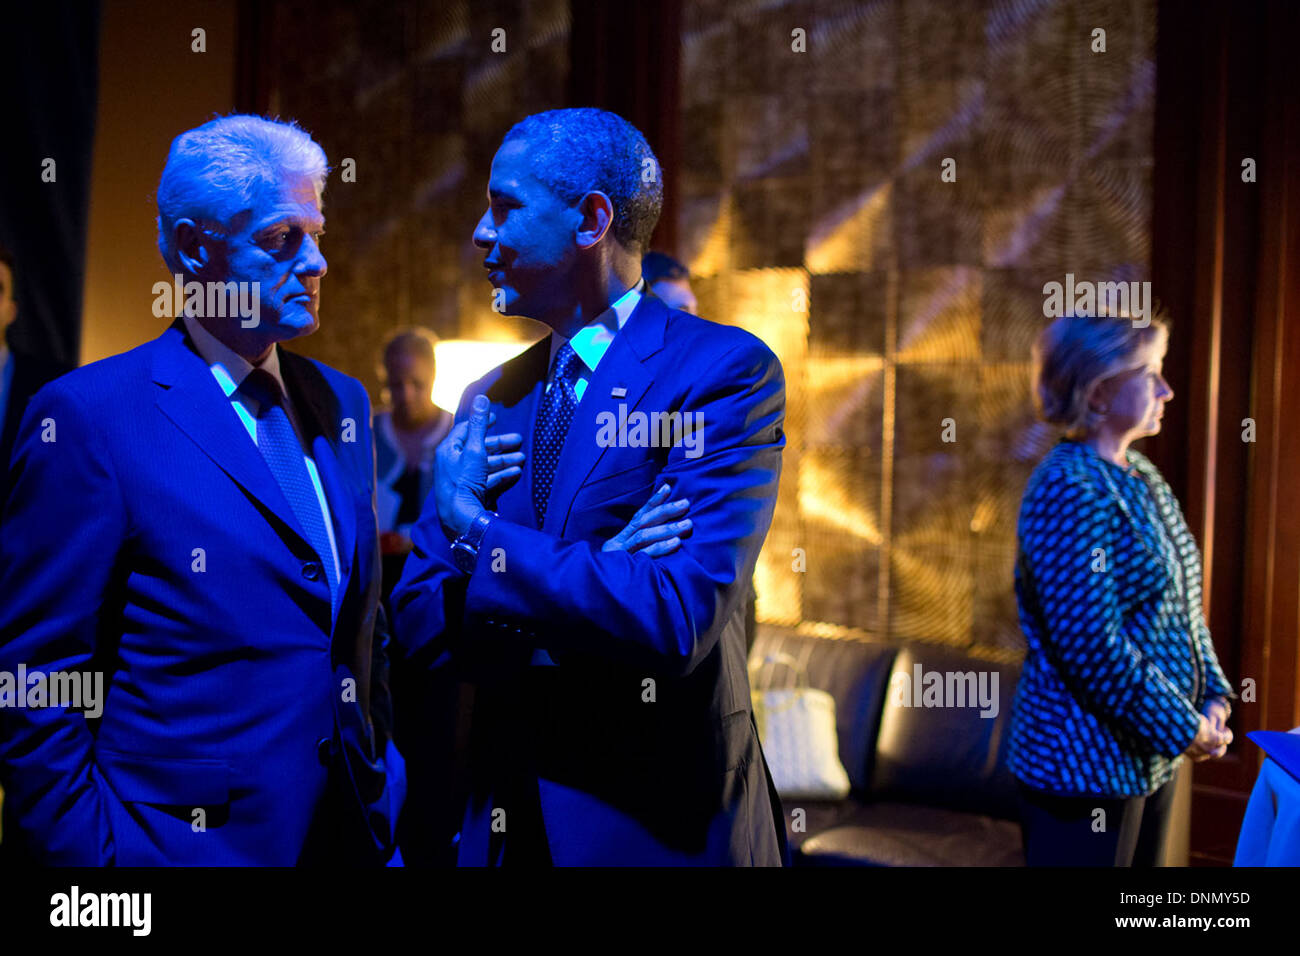 US President Barack Obama and former President Bill Clinton are